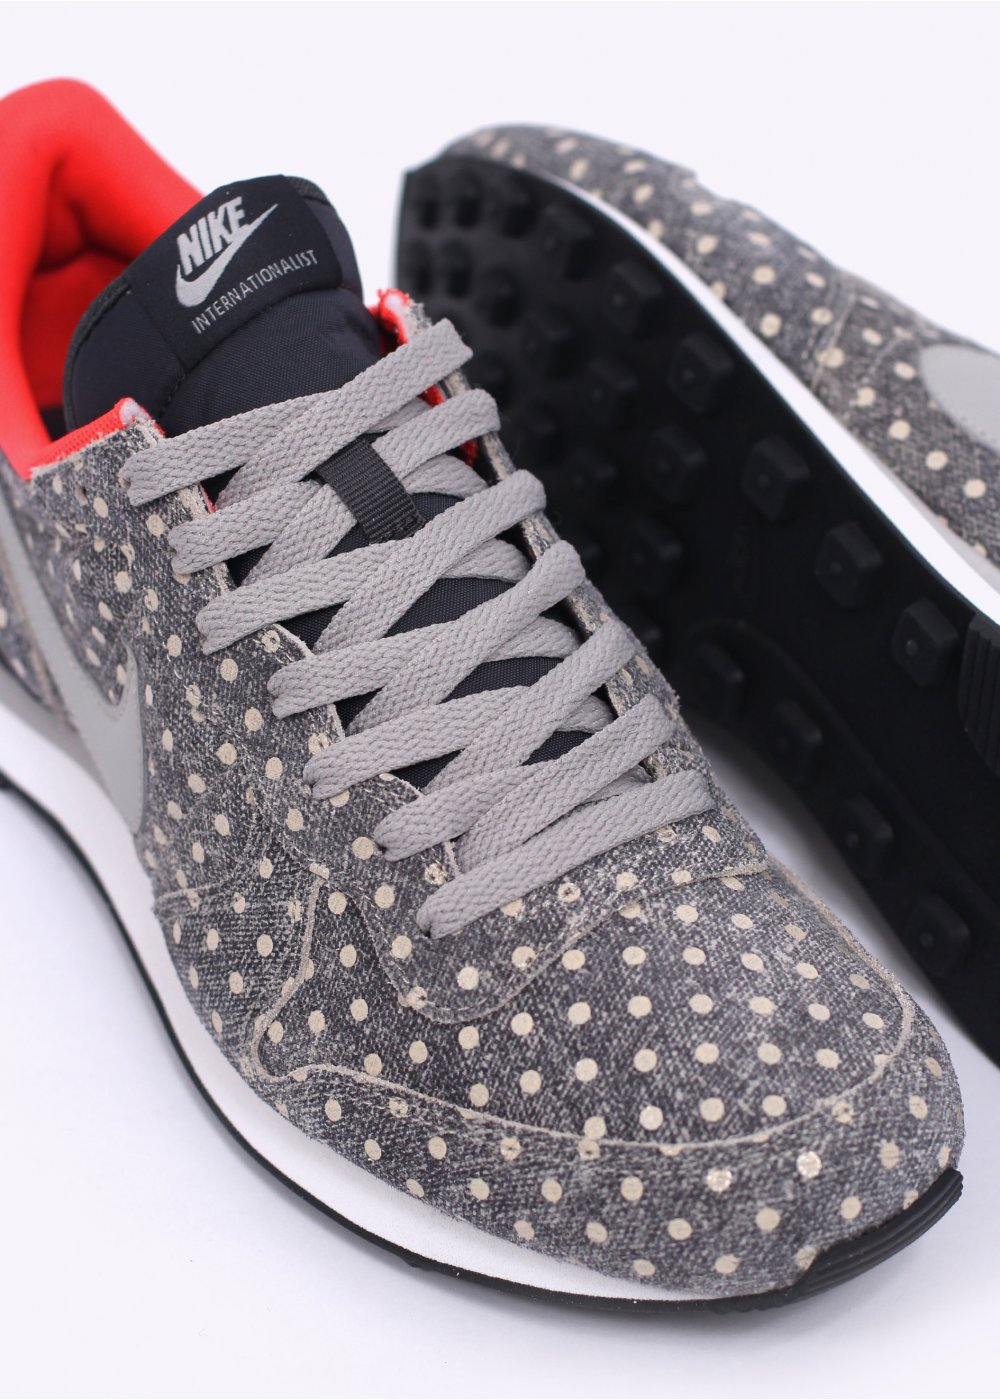 quality design 61621 7db86 ... nike footwear internationalist ltr polka dot trainers anthracite    granite ... ... nike internationalist leather premium ltr prm polka dot  pack sneakers ...